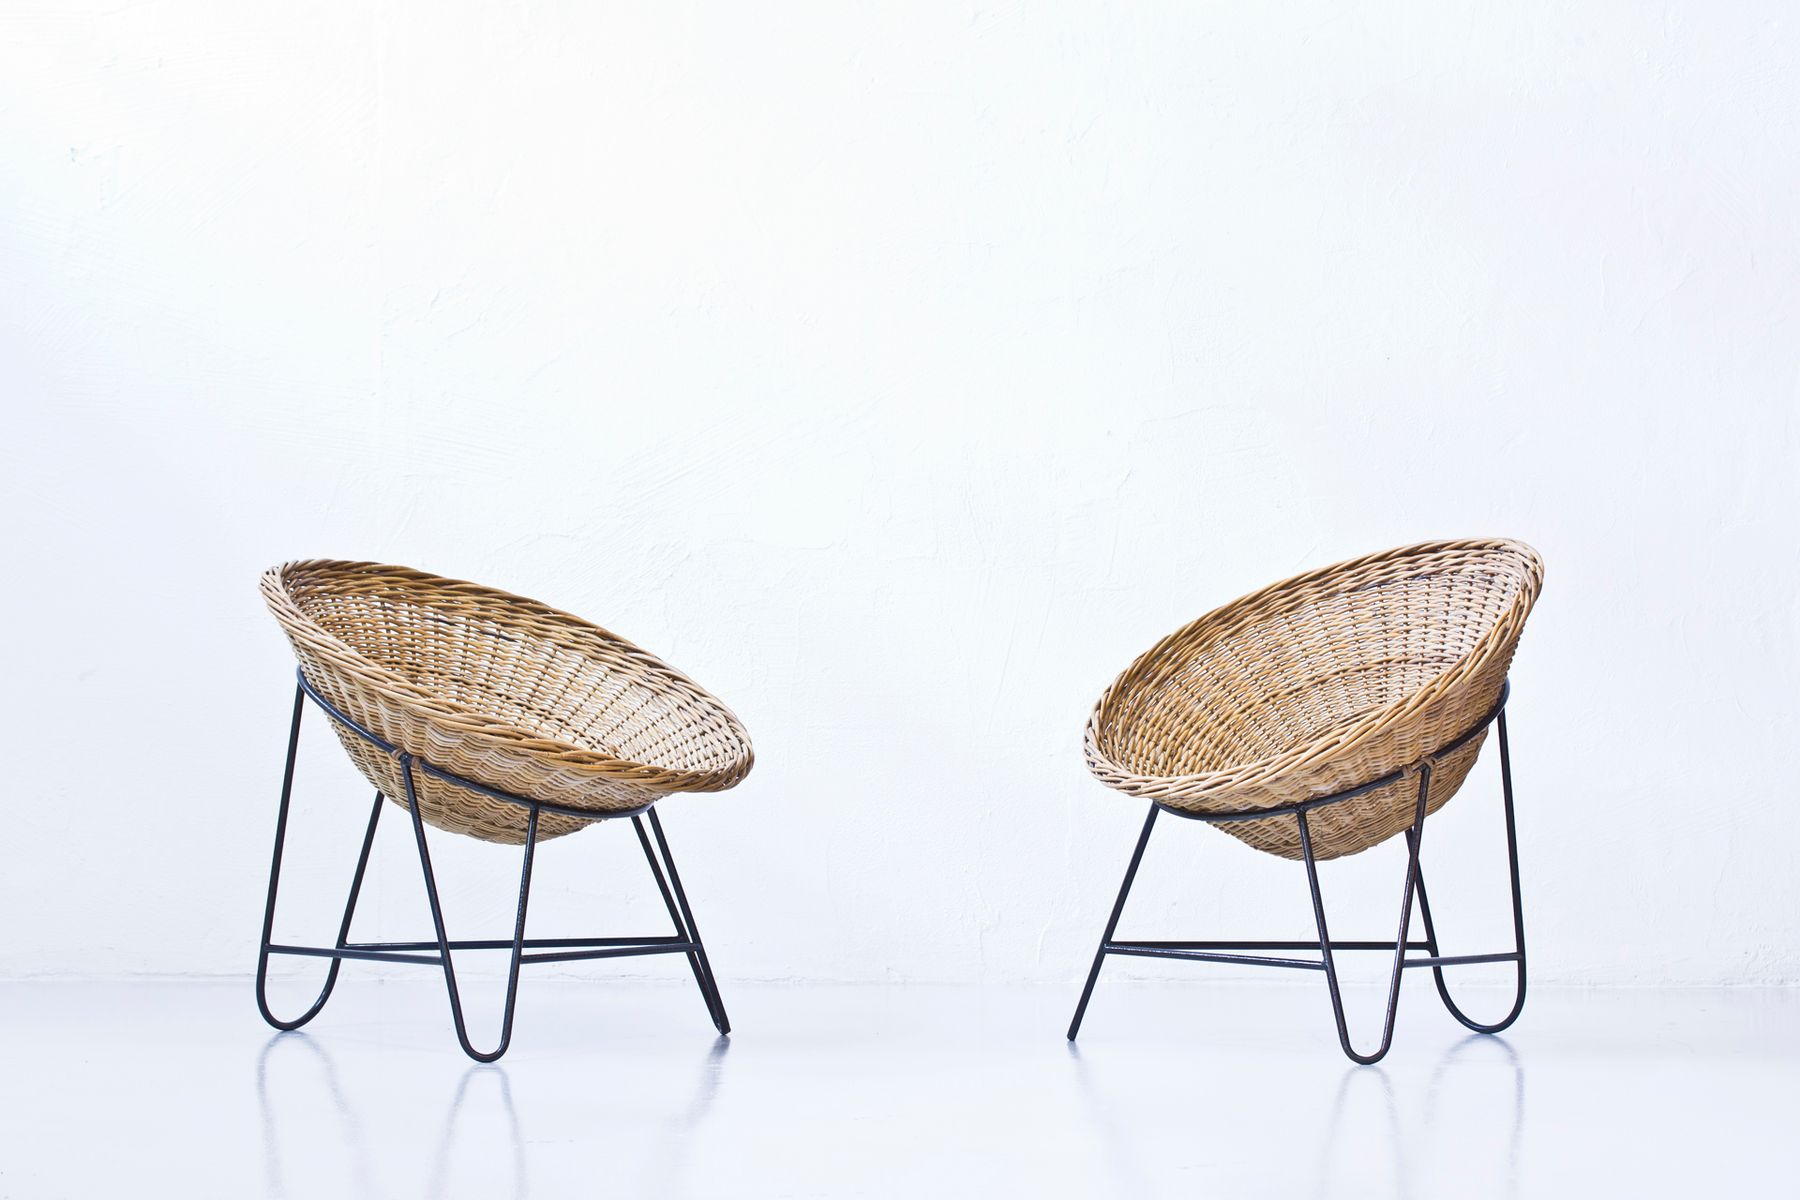 by lio armchairs fan listings chairs carminati back rattan furniture seating chair gio of pair ponti